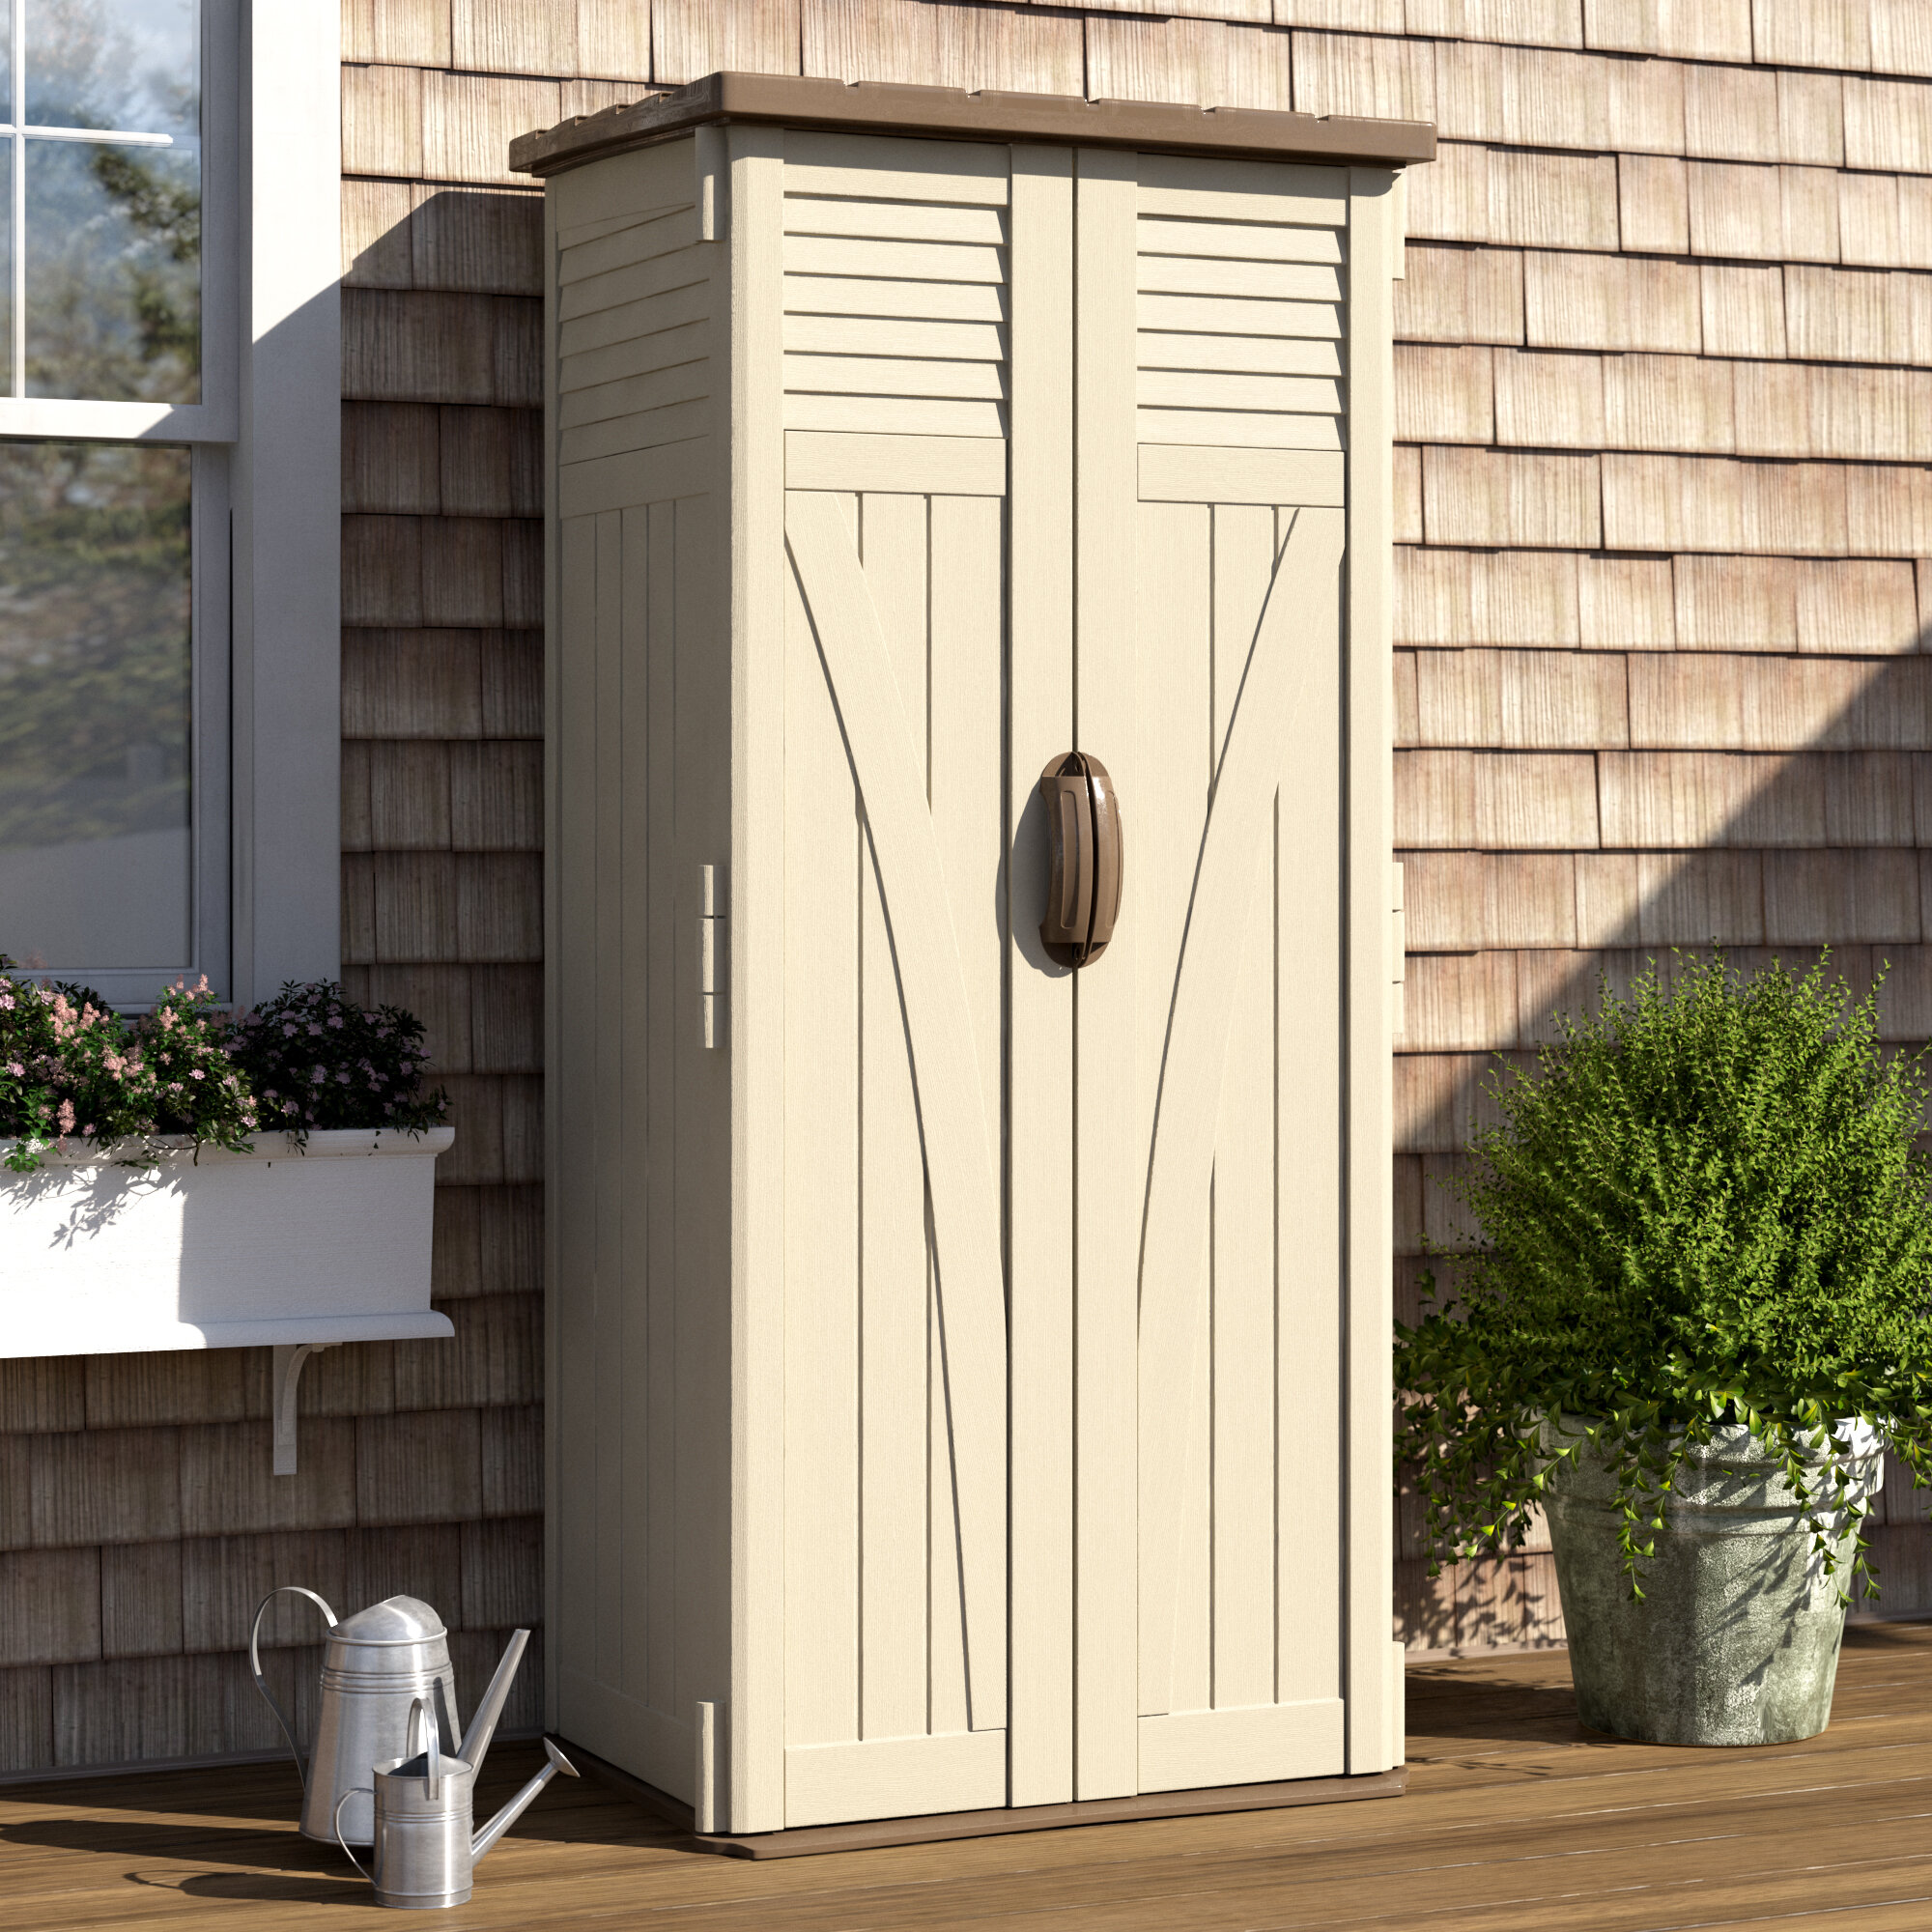 Suncast Outdoor 2 Ft 9 In W X 2 Ft D Plastic Vertical Tool Shed Reviews Wayfair